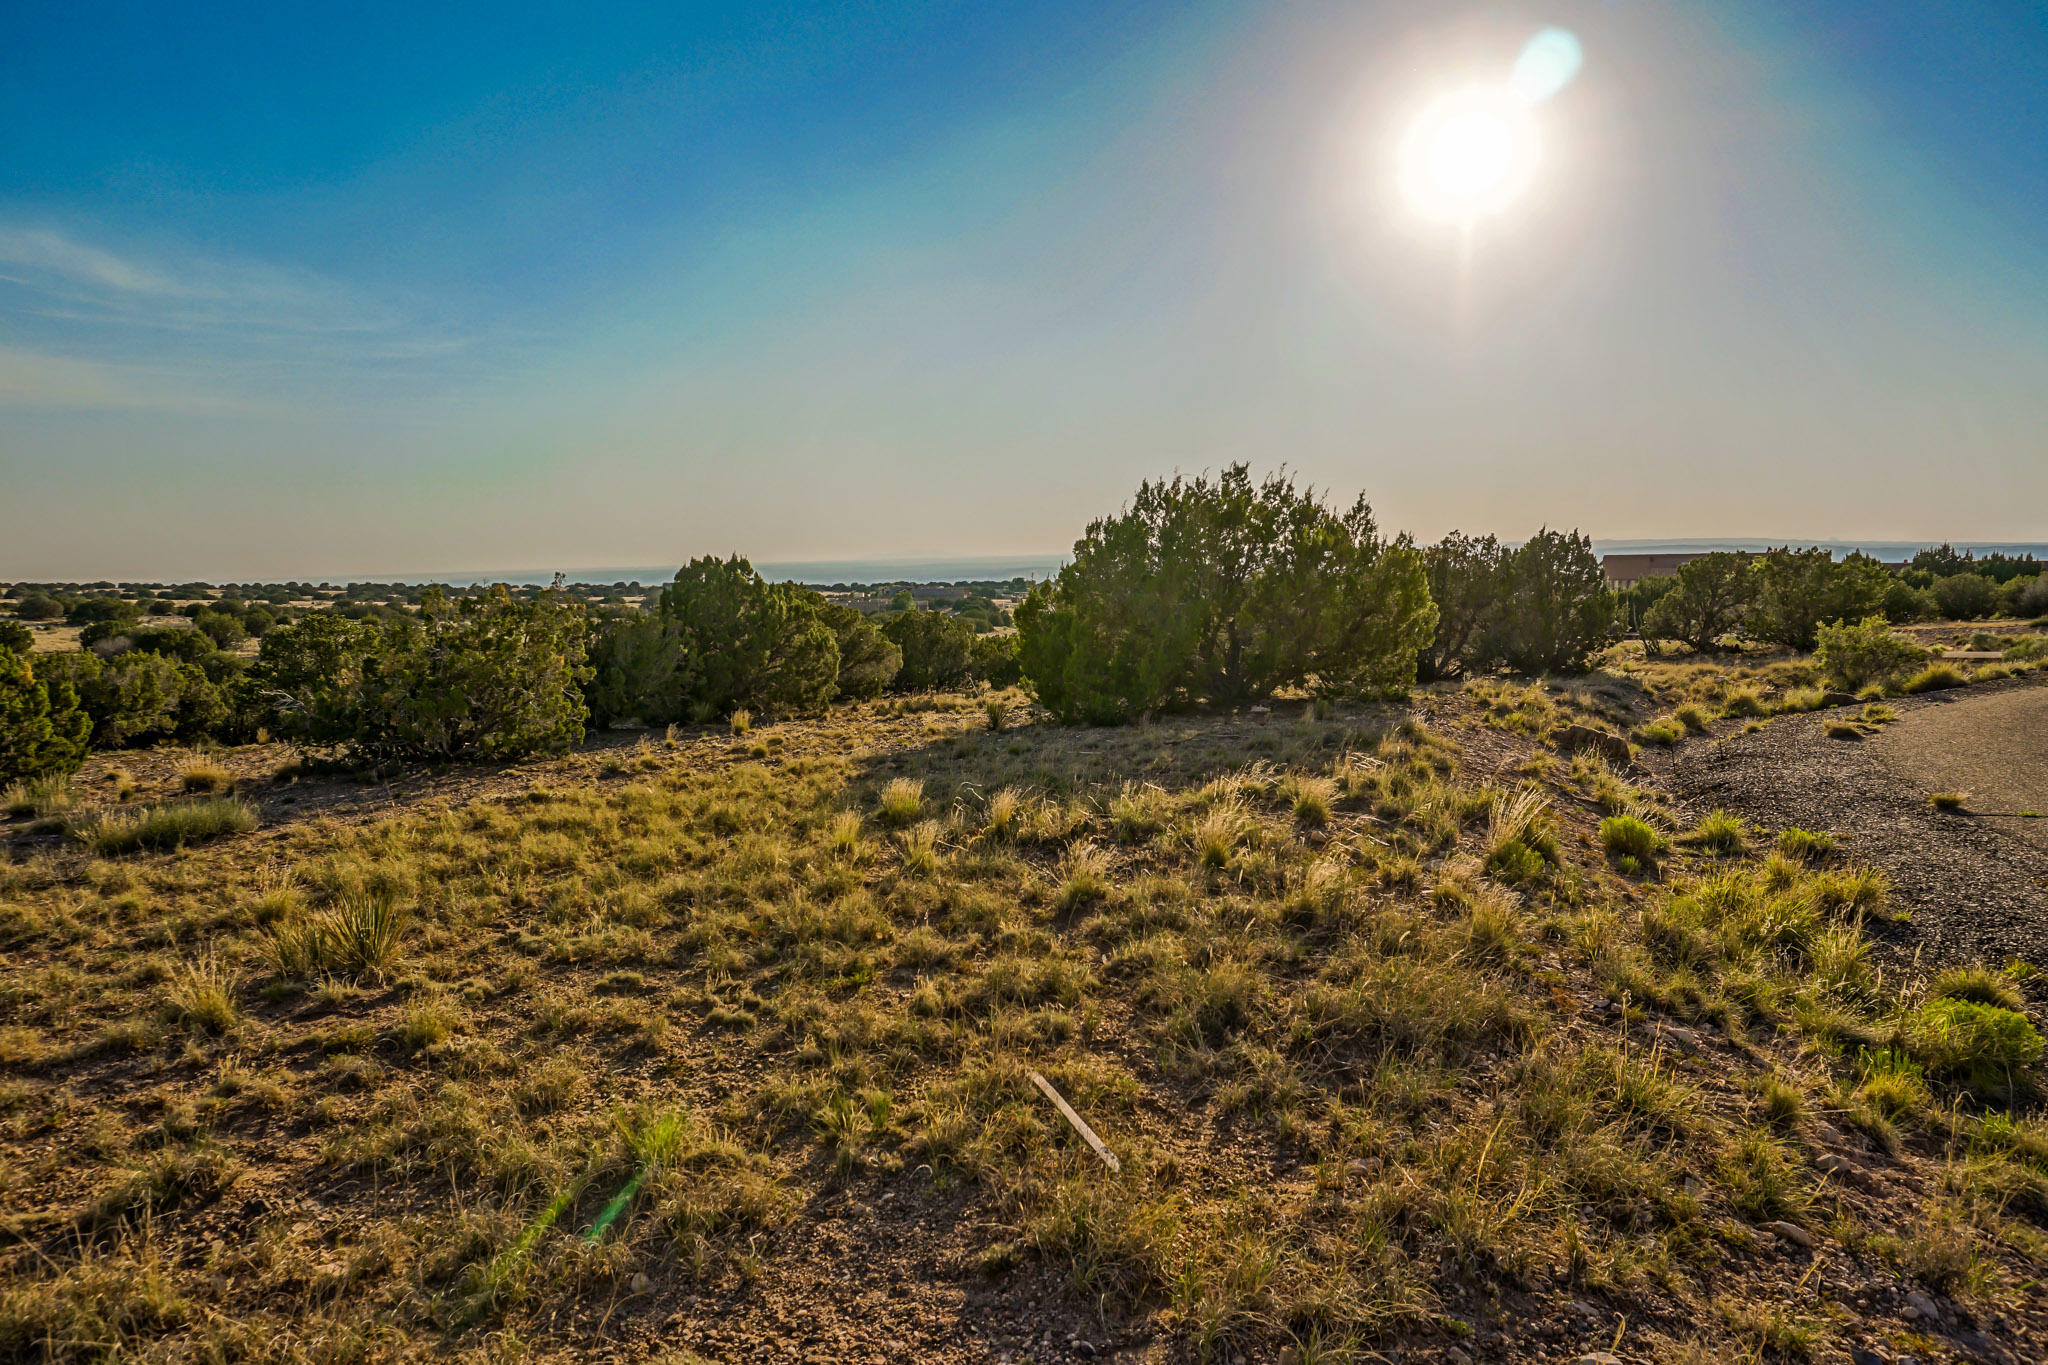 23 Apache Mesa Road, Placitas, NM 87043 - Placitas, NM real estate listing